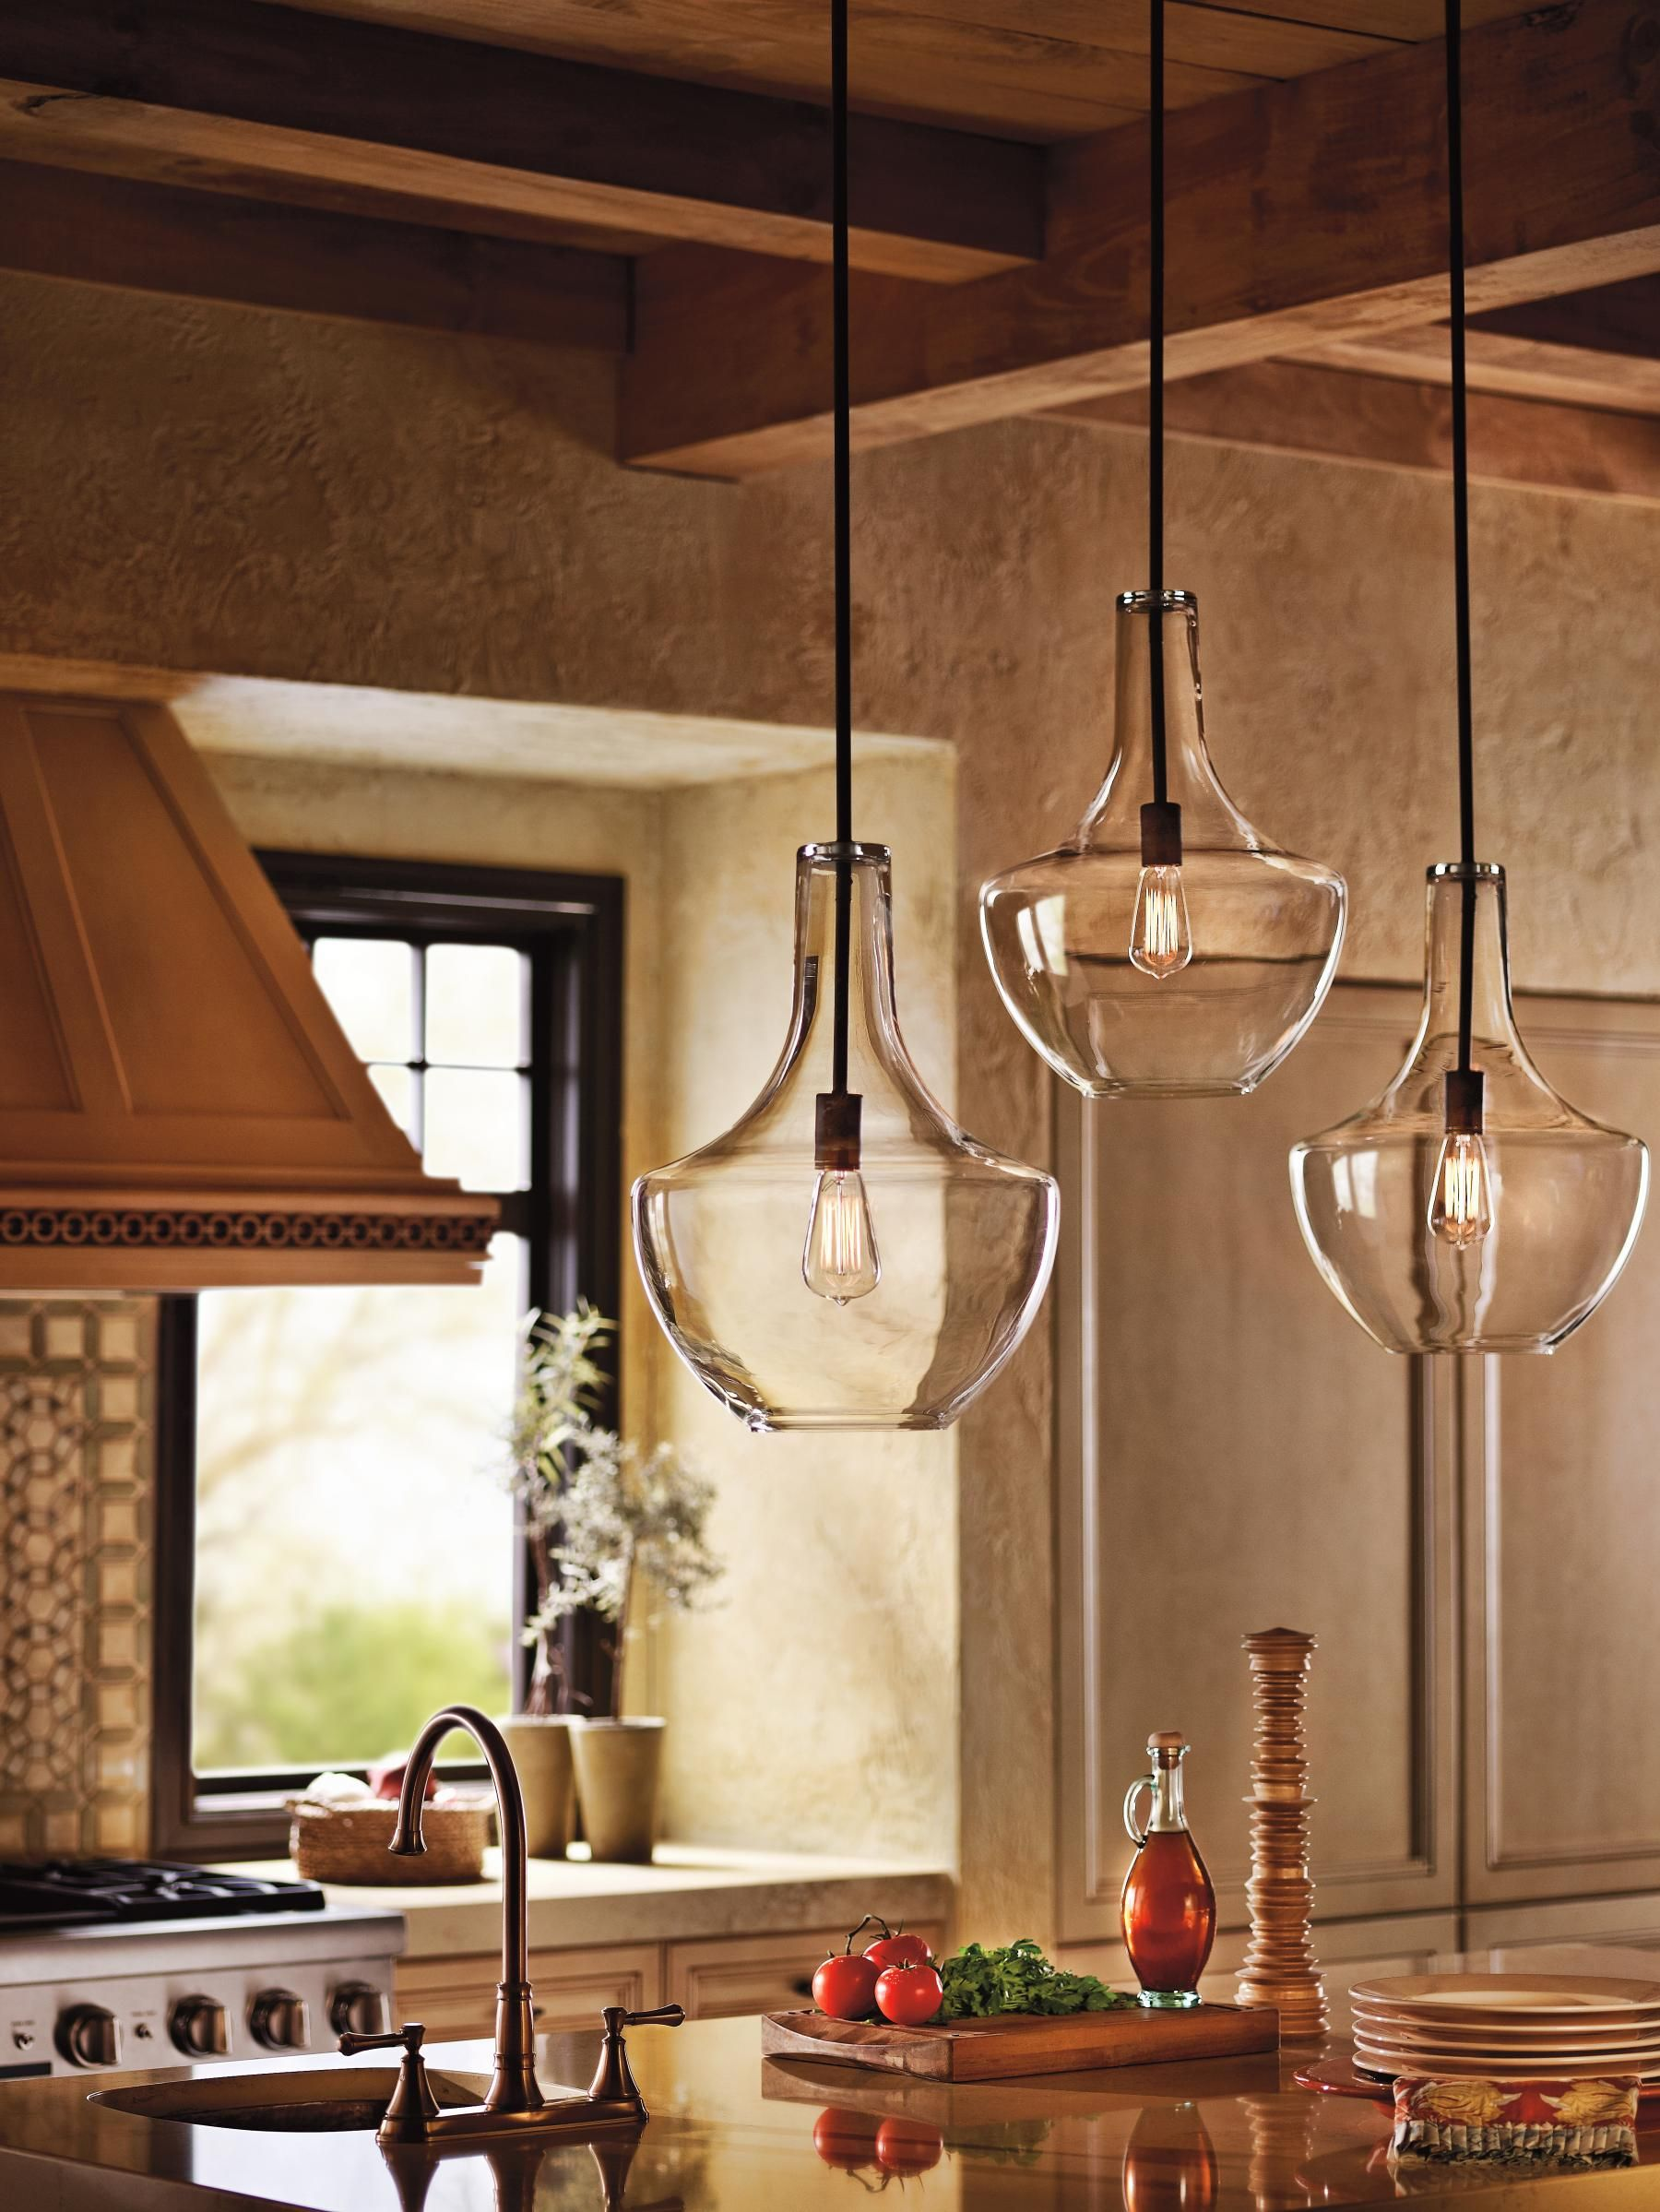 Everly Ceiling Pendant From Kichler Lighting Over Kitchen Island